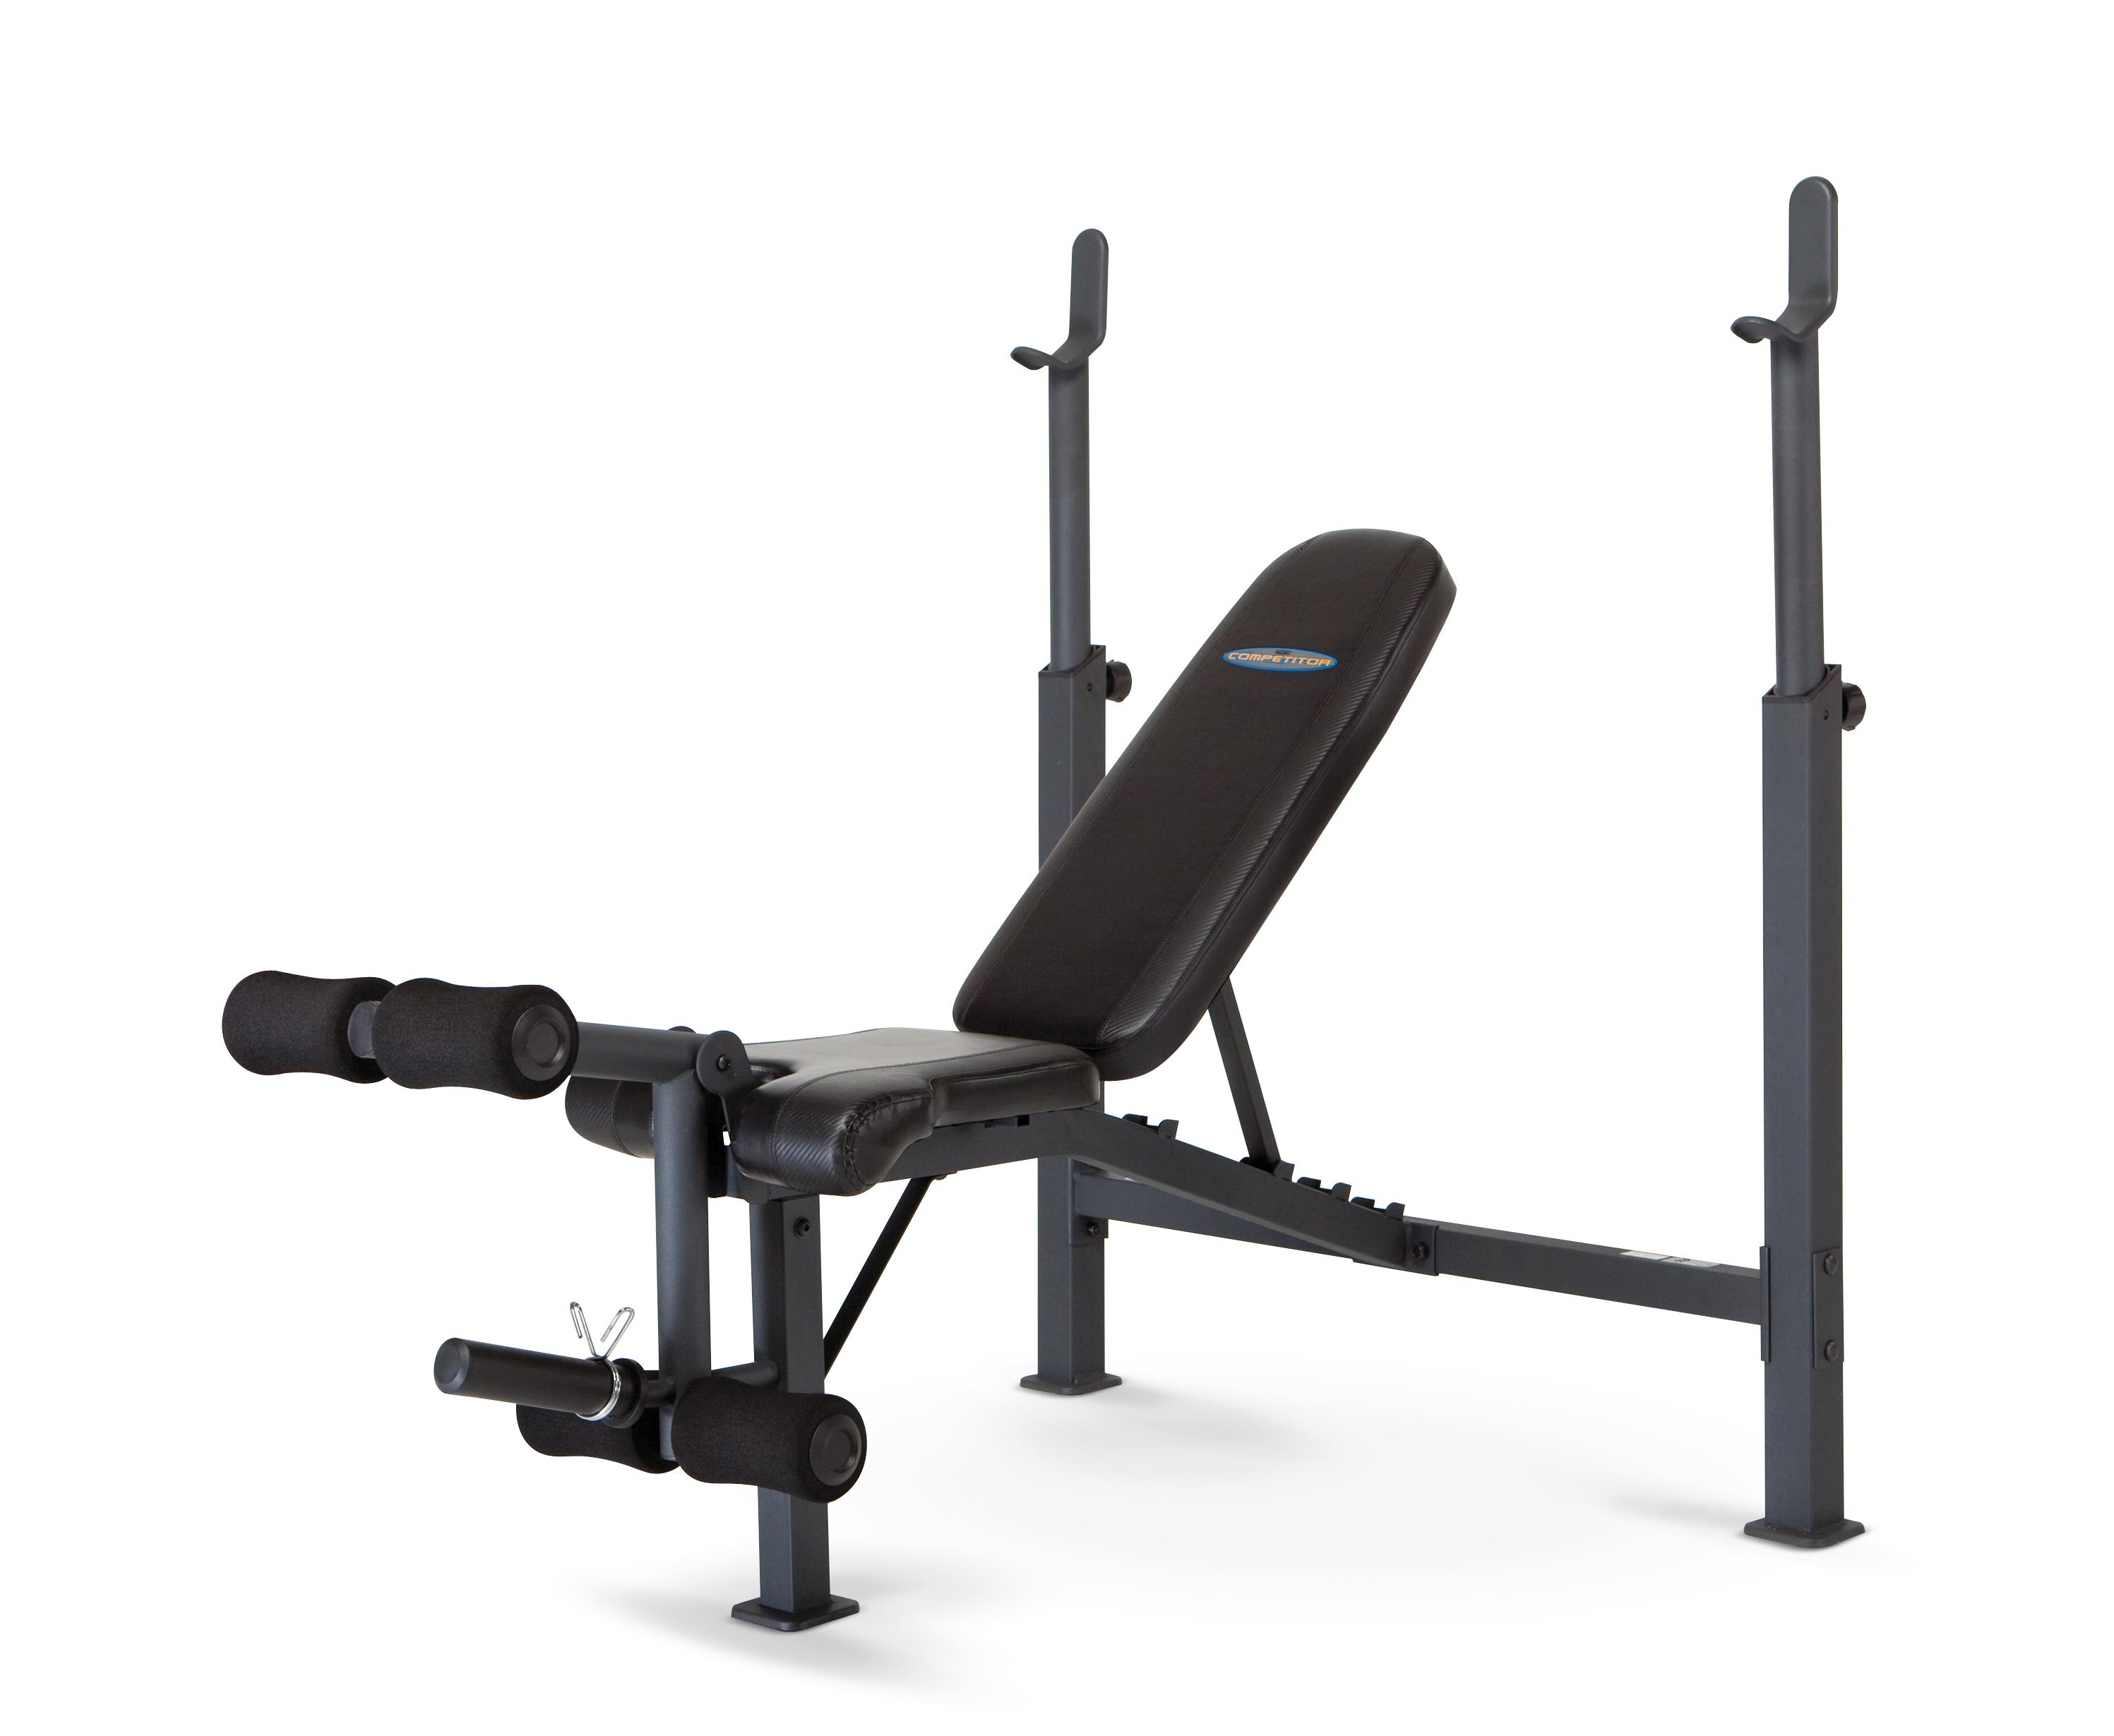 Competitor cb 729 olympic weight bench Bench weights